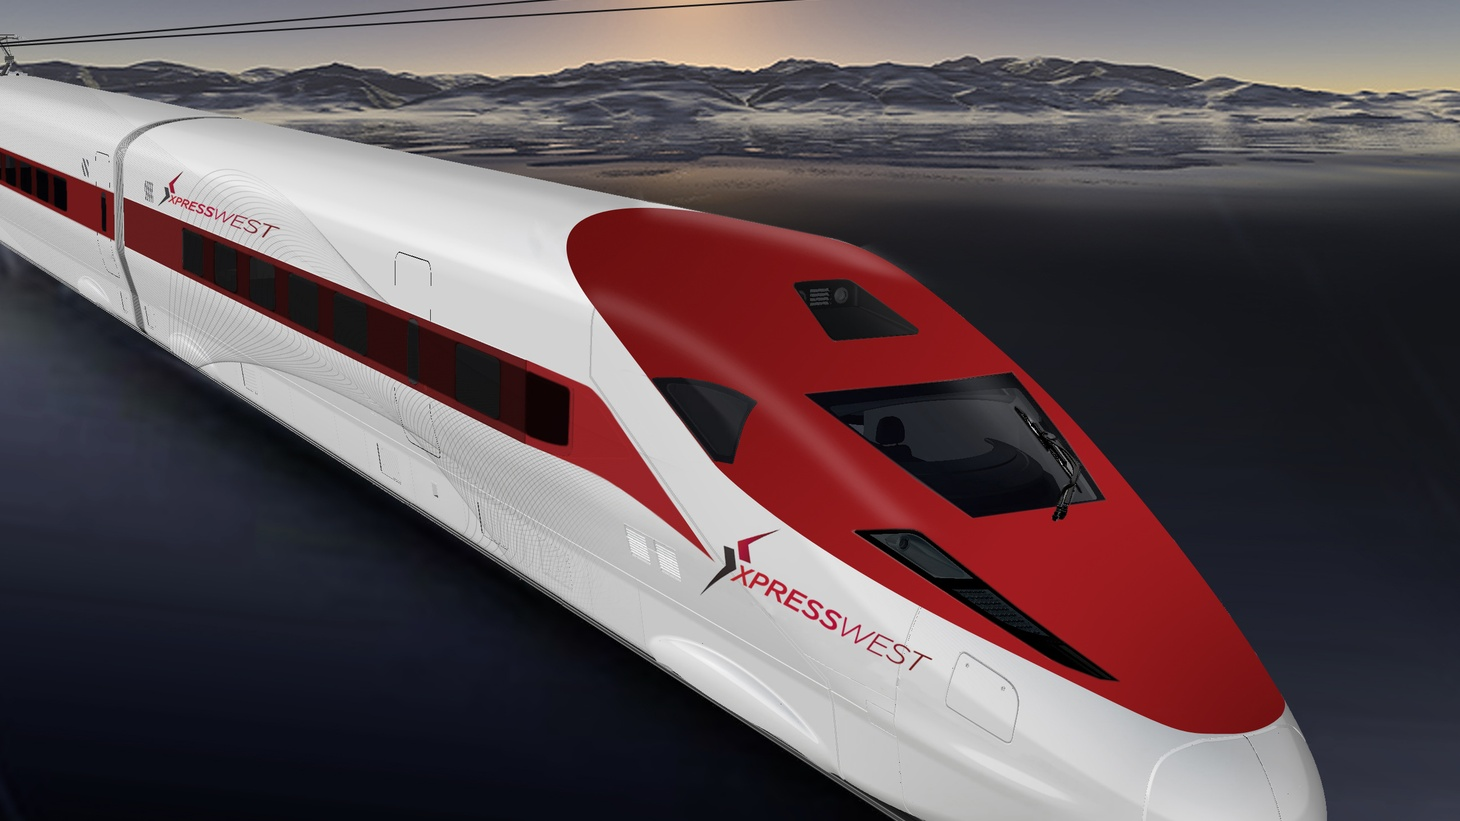 Governor Brown isn't the only one dreaming about high-speed rail in California. China has come up with $100 million in seed money for a bullet train from LA to Palmdale to Victorville — and, finally, to Las Vegas. The technology is already there and there's plenty of traffic to Sin City — with tens of thousands of drivers who would rather be passengers.